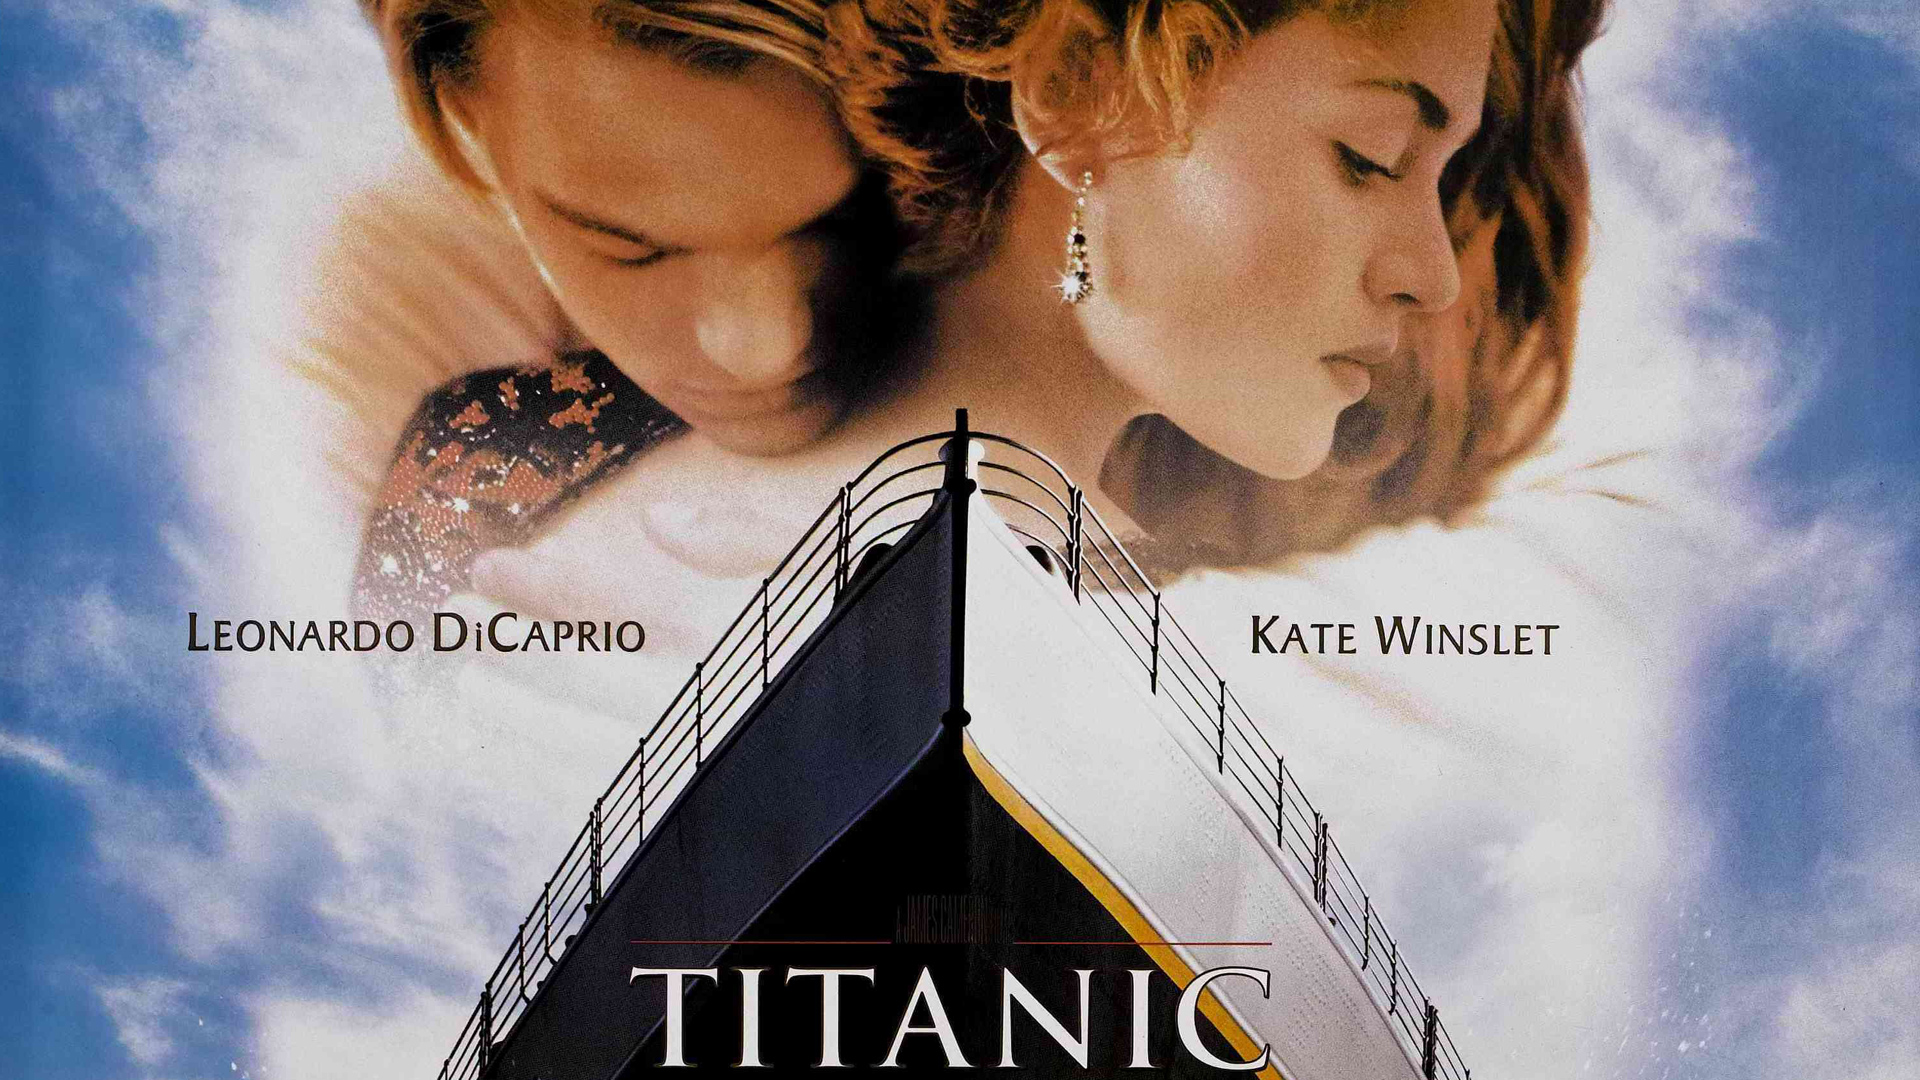 Titanic movie poster for sale